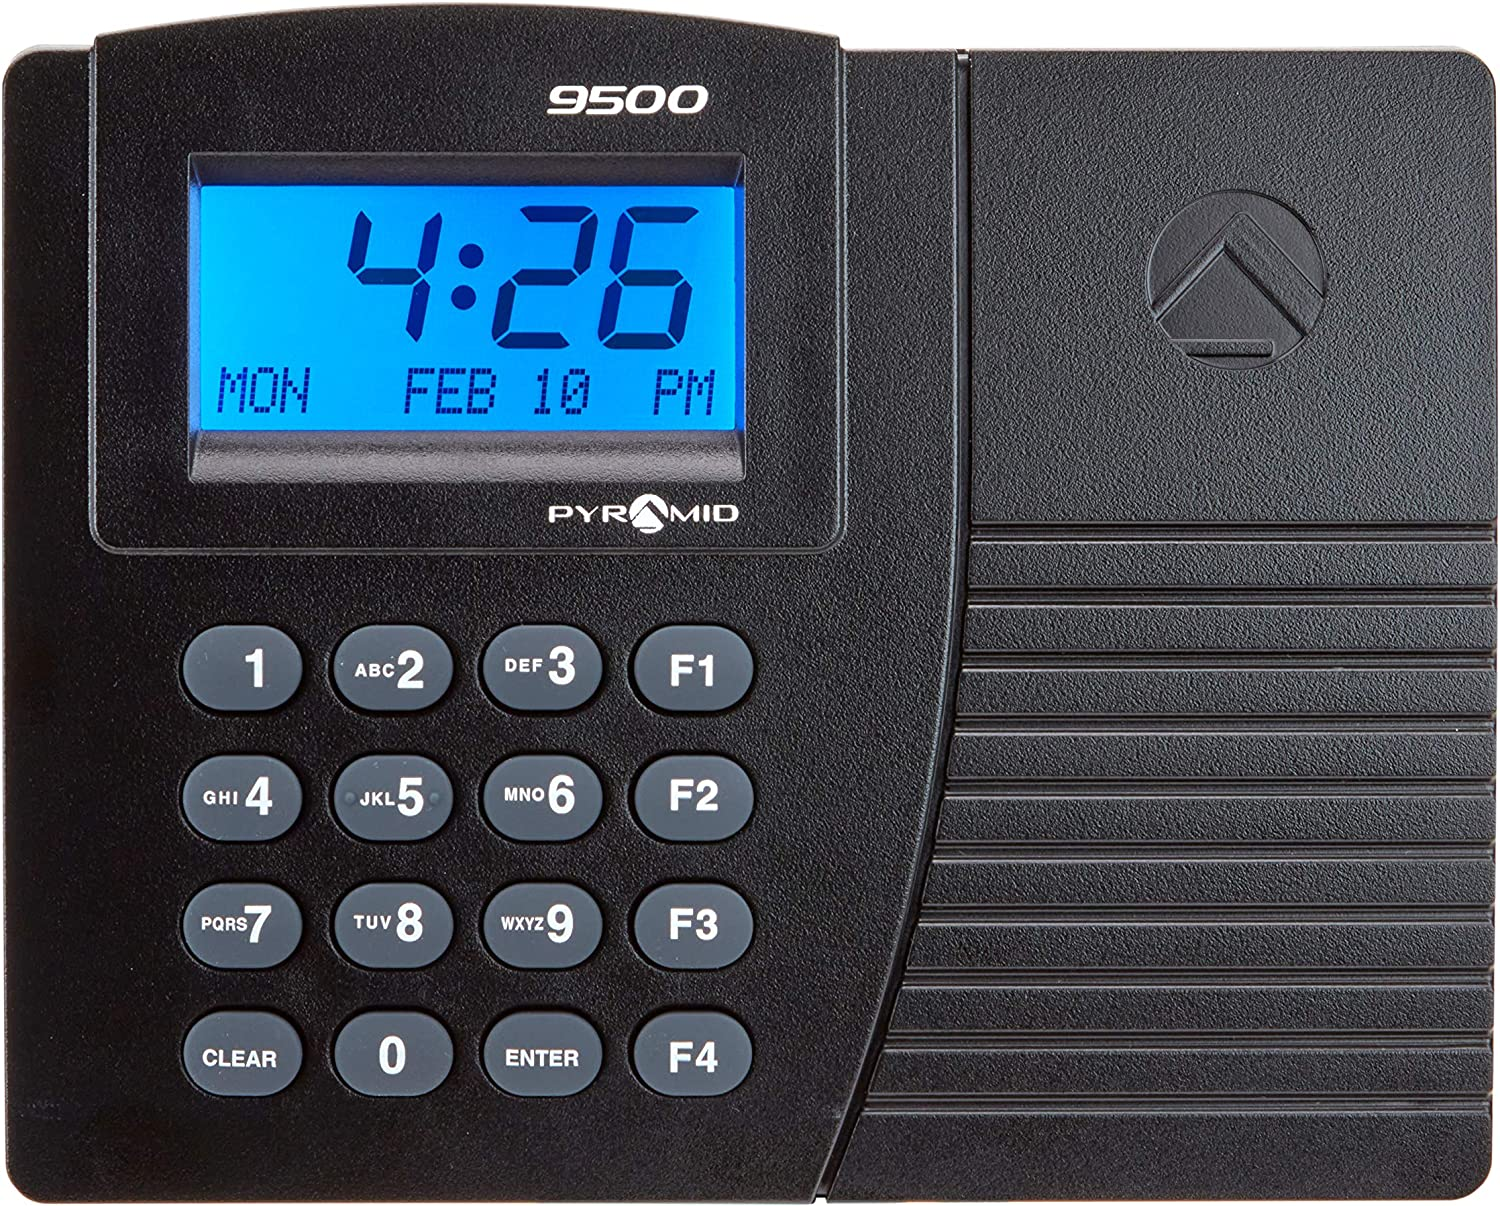 Pyramid TimeTrax Elite TTPROXEK Automated Proximity Time Clock System, Includes Software, Windows Compatible - Made in USA